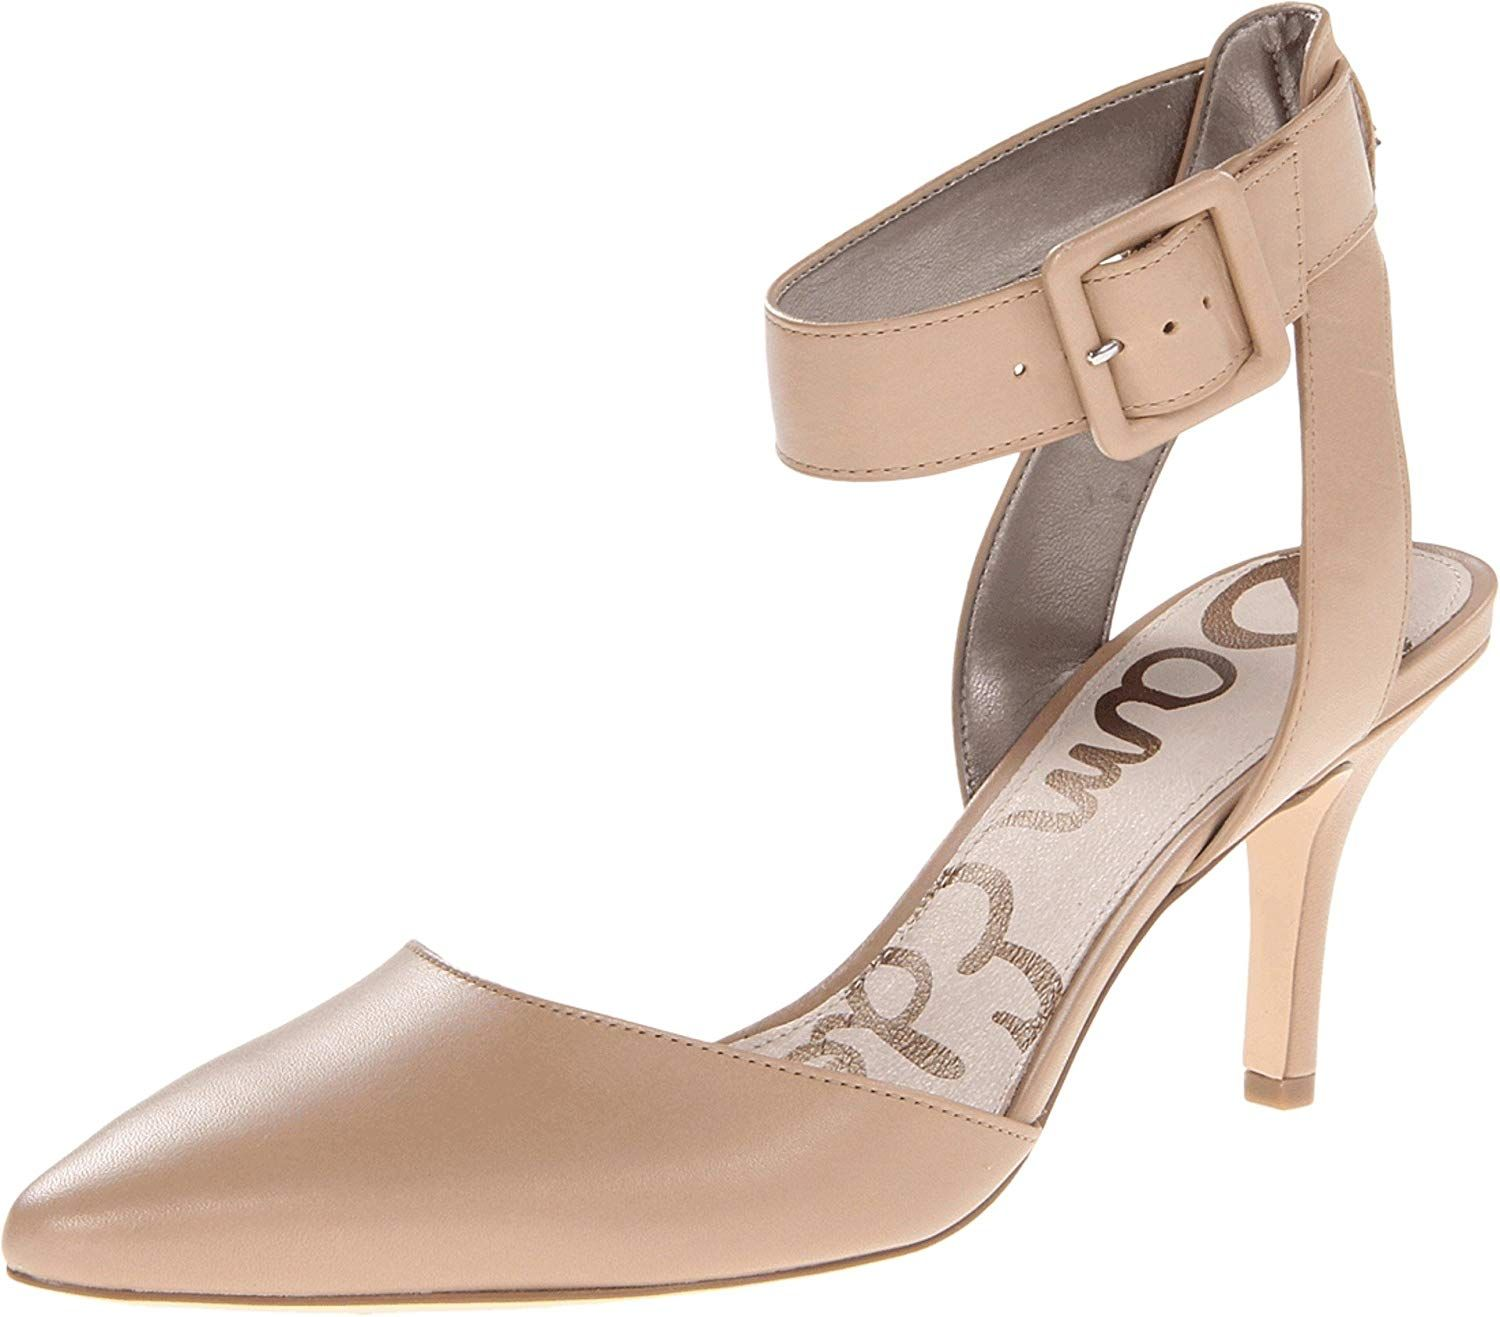 4231a4d57 Sam Edelman Women s Okala Dress Pump. Sam Edelman captures elegance with a  touch of the wild side in this stunning two-piece. Women s Shoes